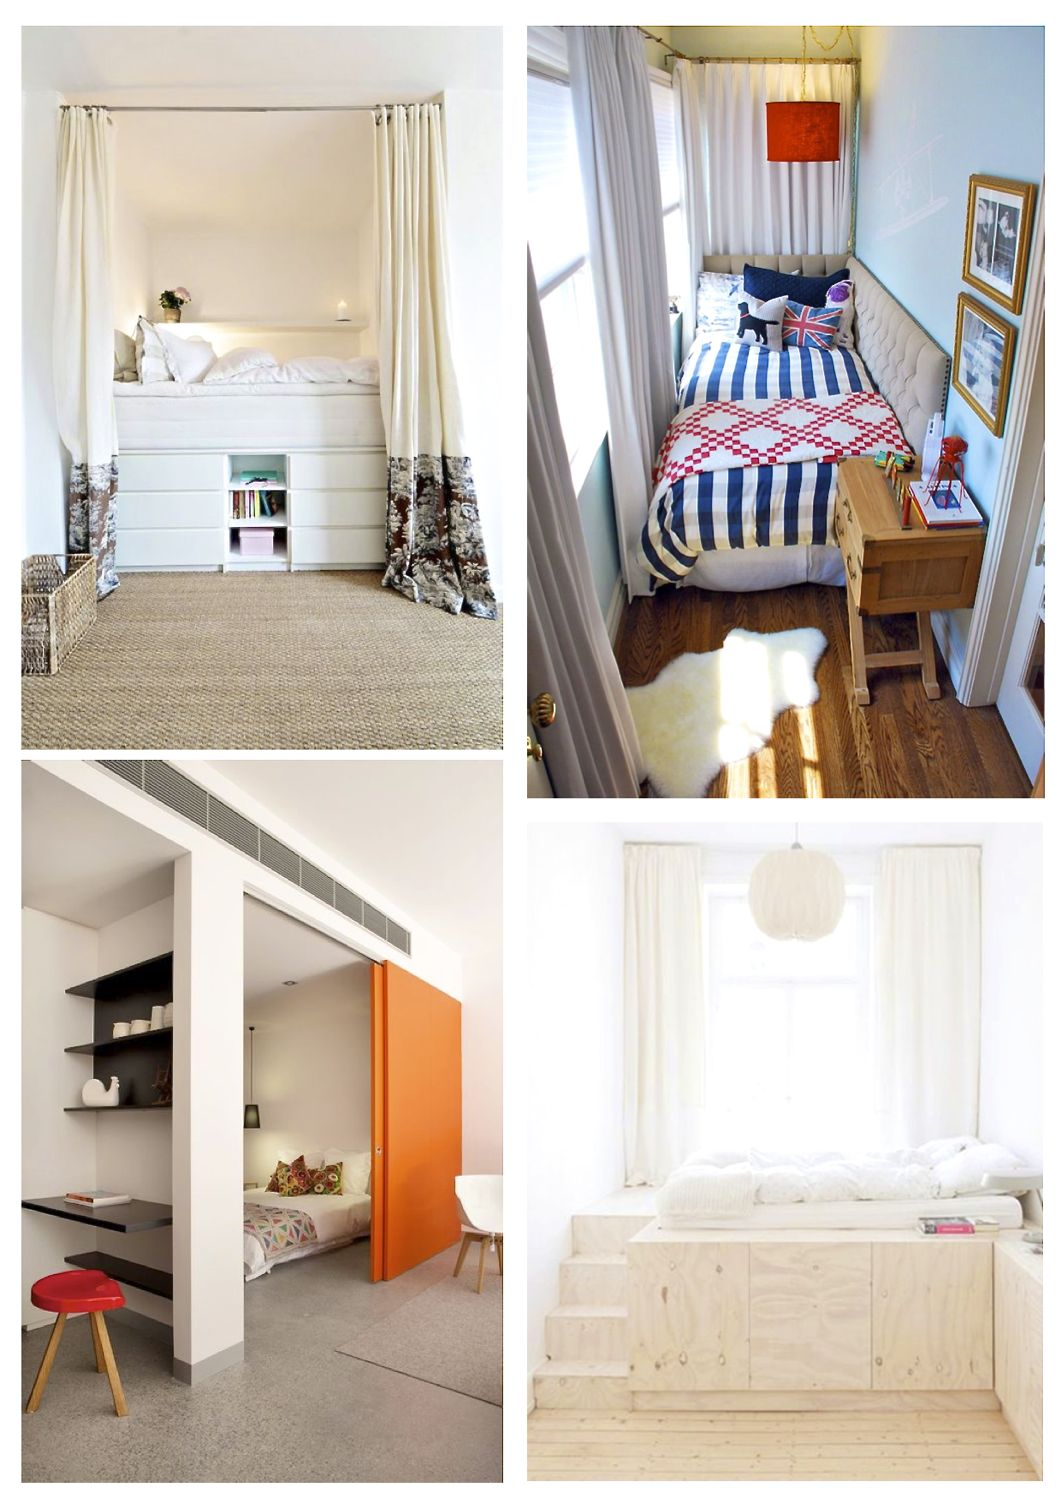 13 Small Bedroom Ideas - Style Barista on Ideas For Small Rooms  id=50353